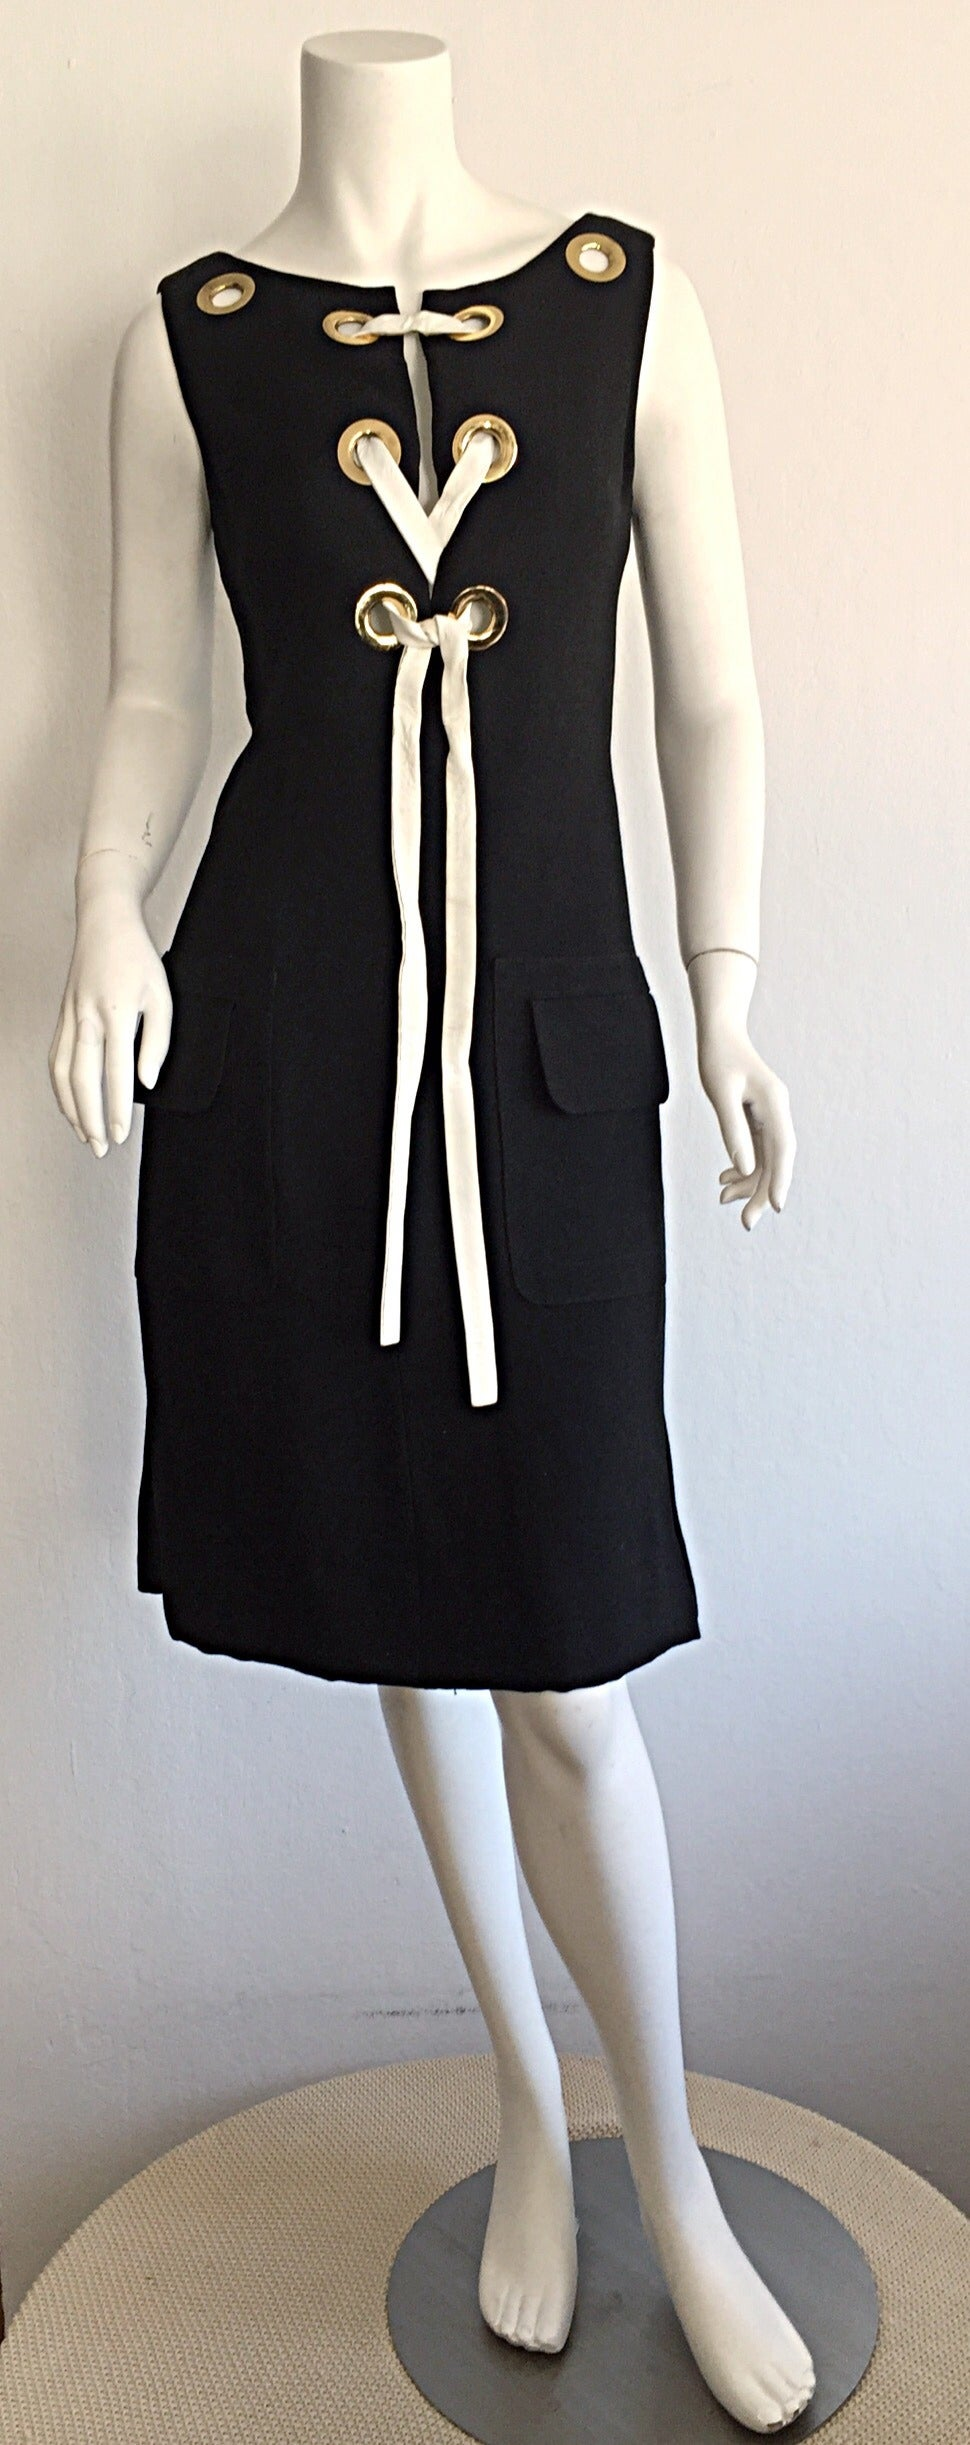 Rare 1960s Pierre Cardin Black Grommet Space Age 60s Vintage Linen Shift Dress 2